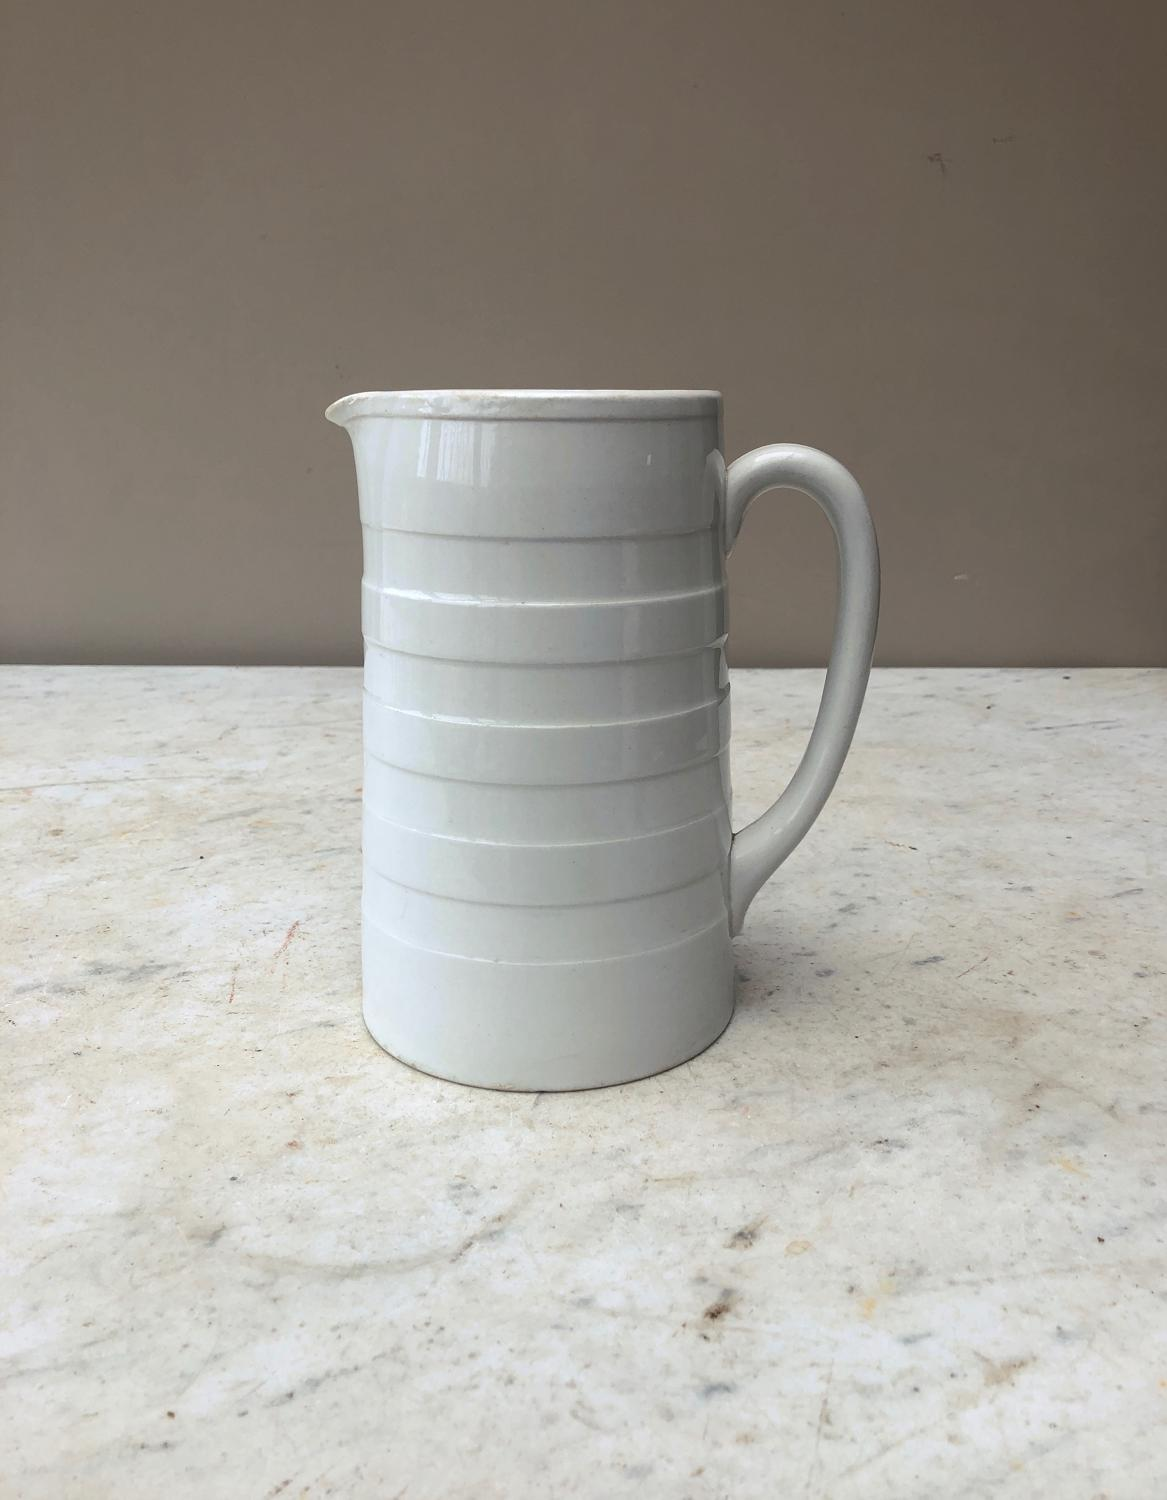 Edwardian White Banded Dairy Milk Cream Jug